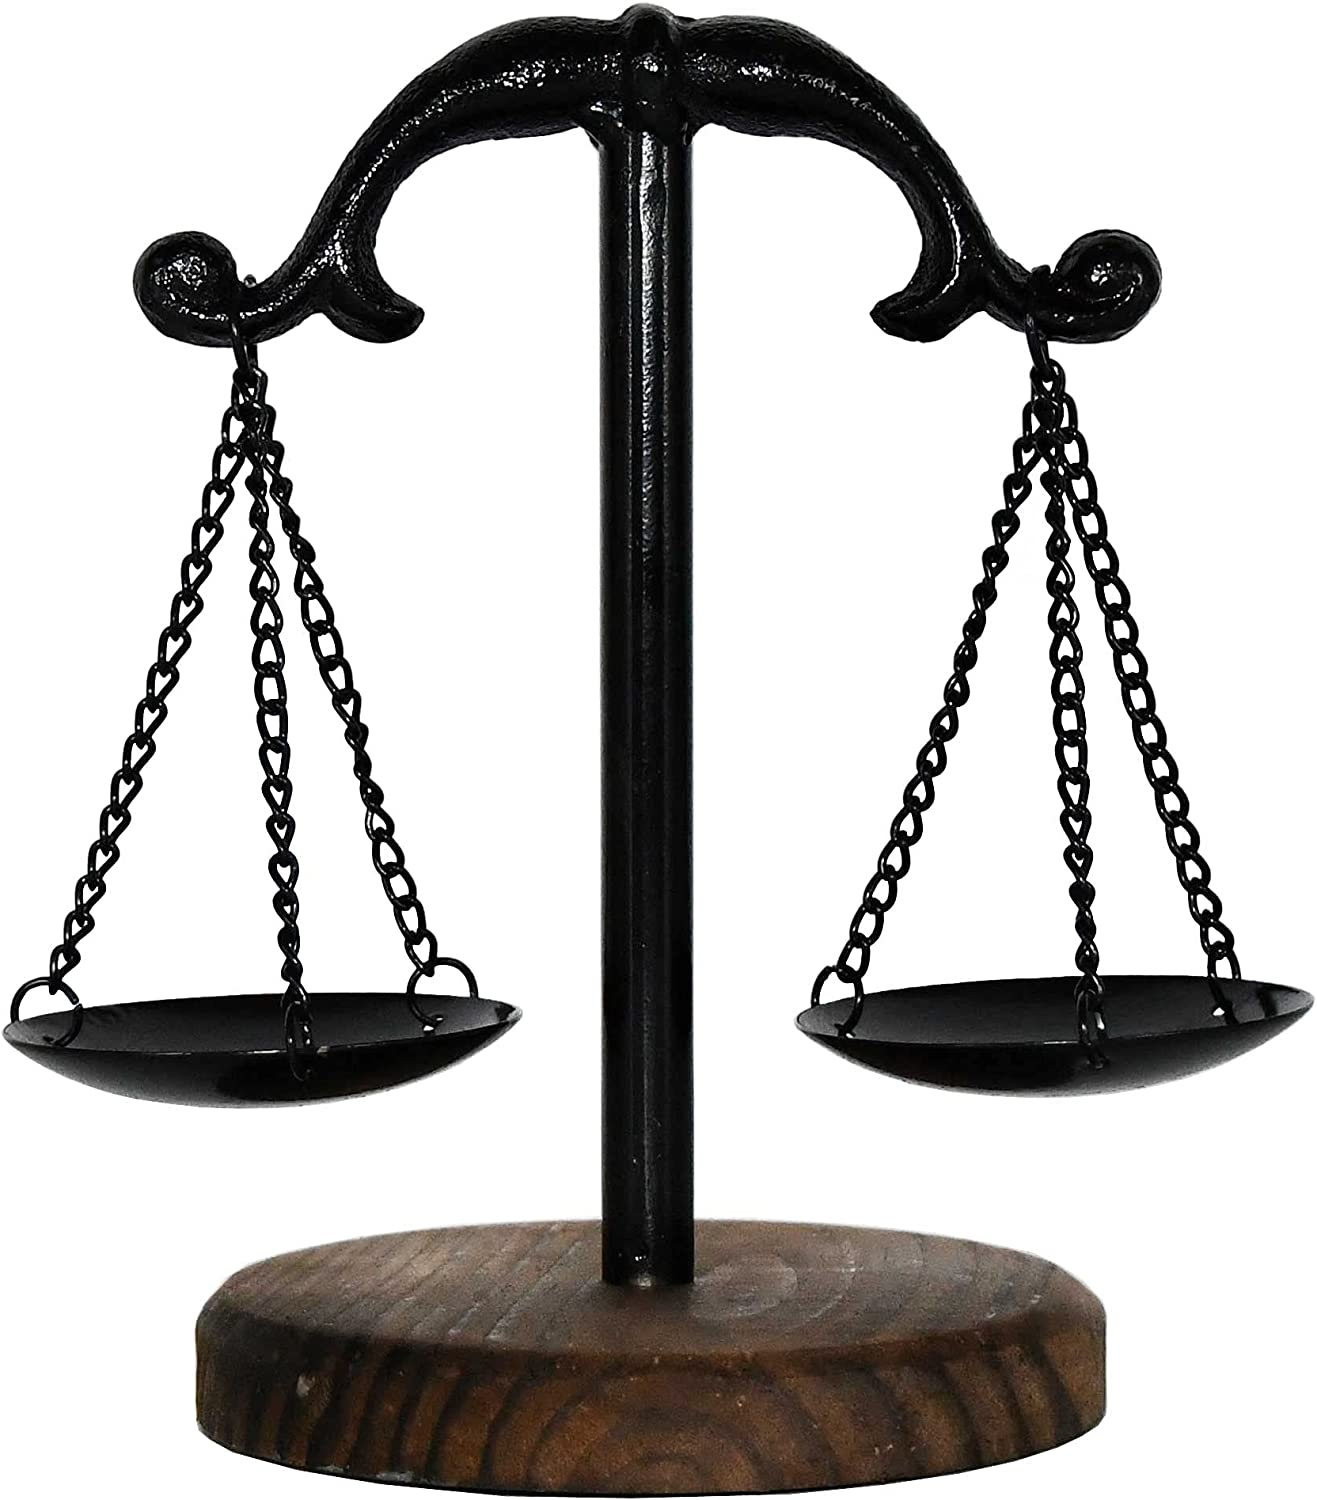 Owlgift Vintage Style Metal Libra Jewelry Display Tray w/Wooden Base Cosmetic Organizer Storage, Lawyer Scale of Justice, Farmhouse Candleholder, Home Décor Antique Weight Balancing Scale – Black